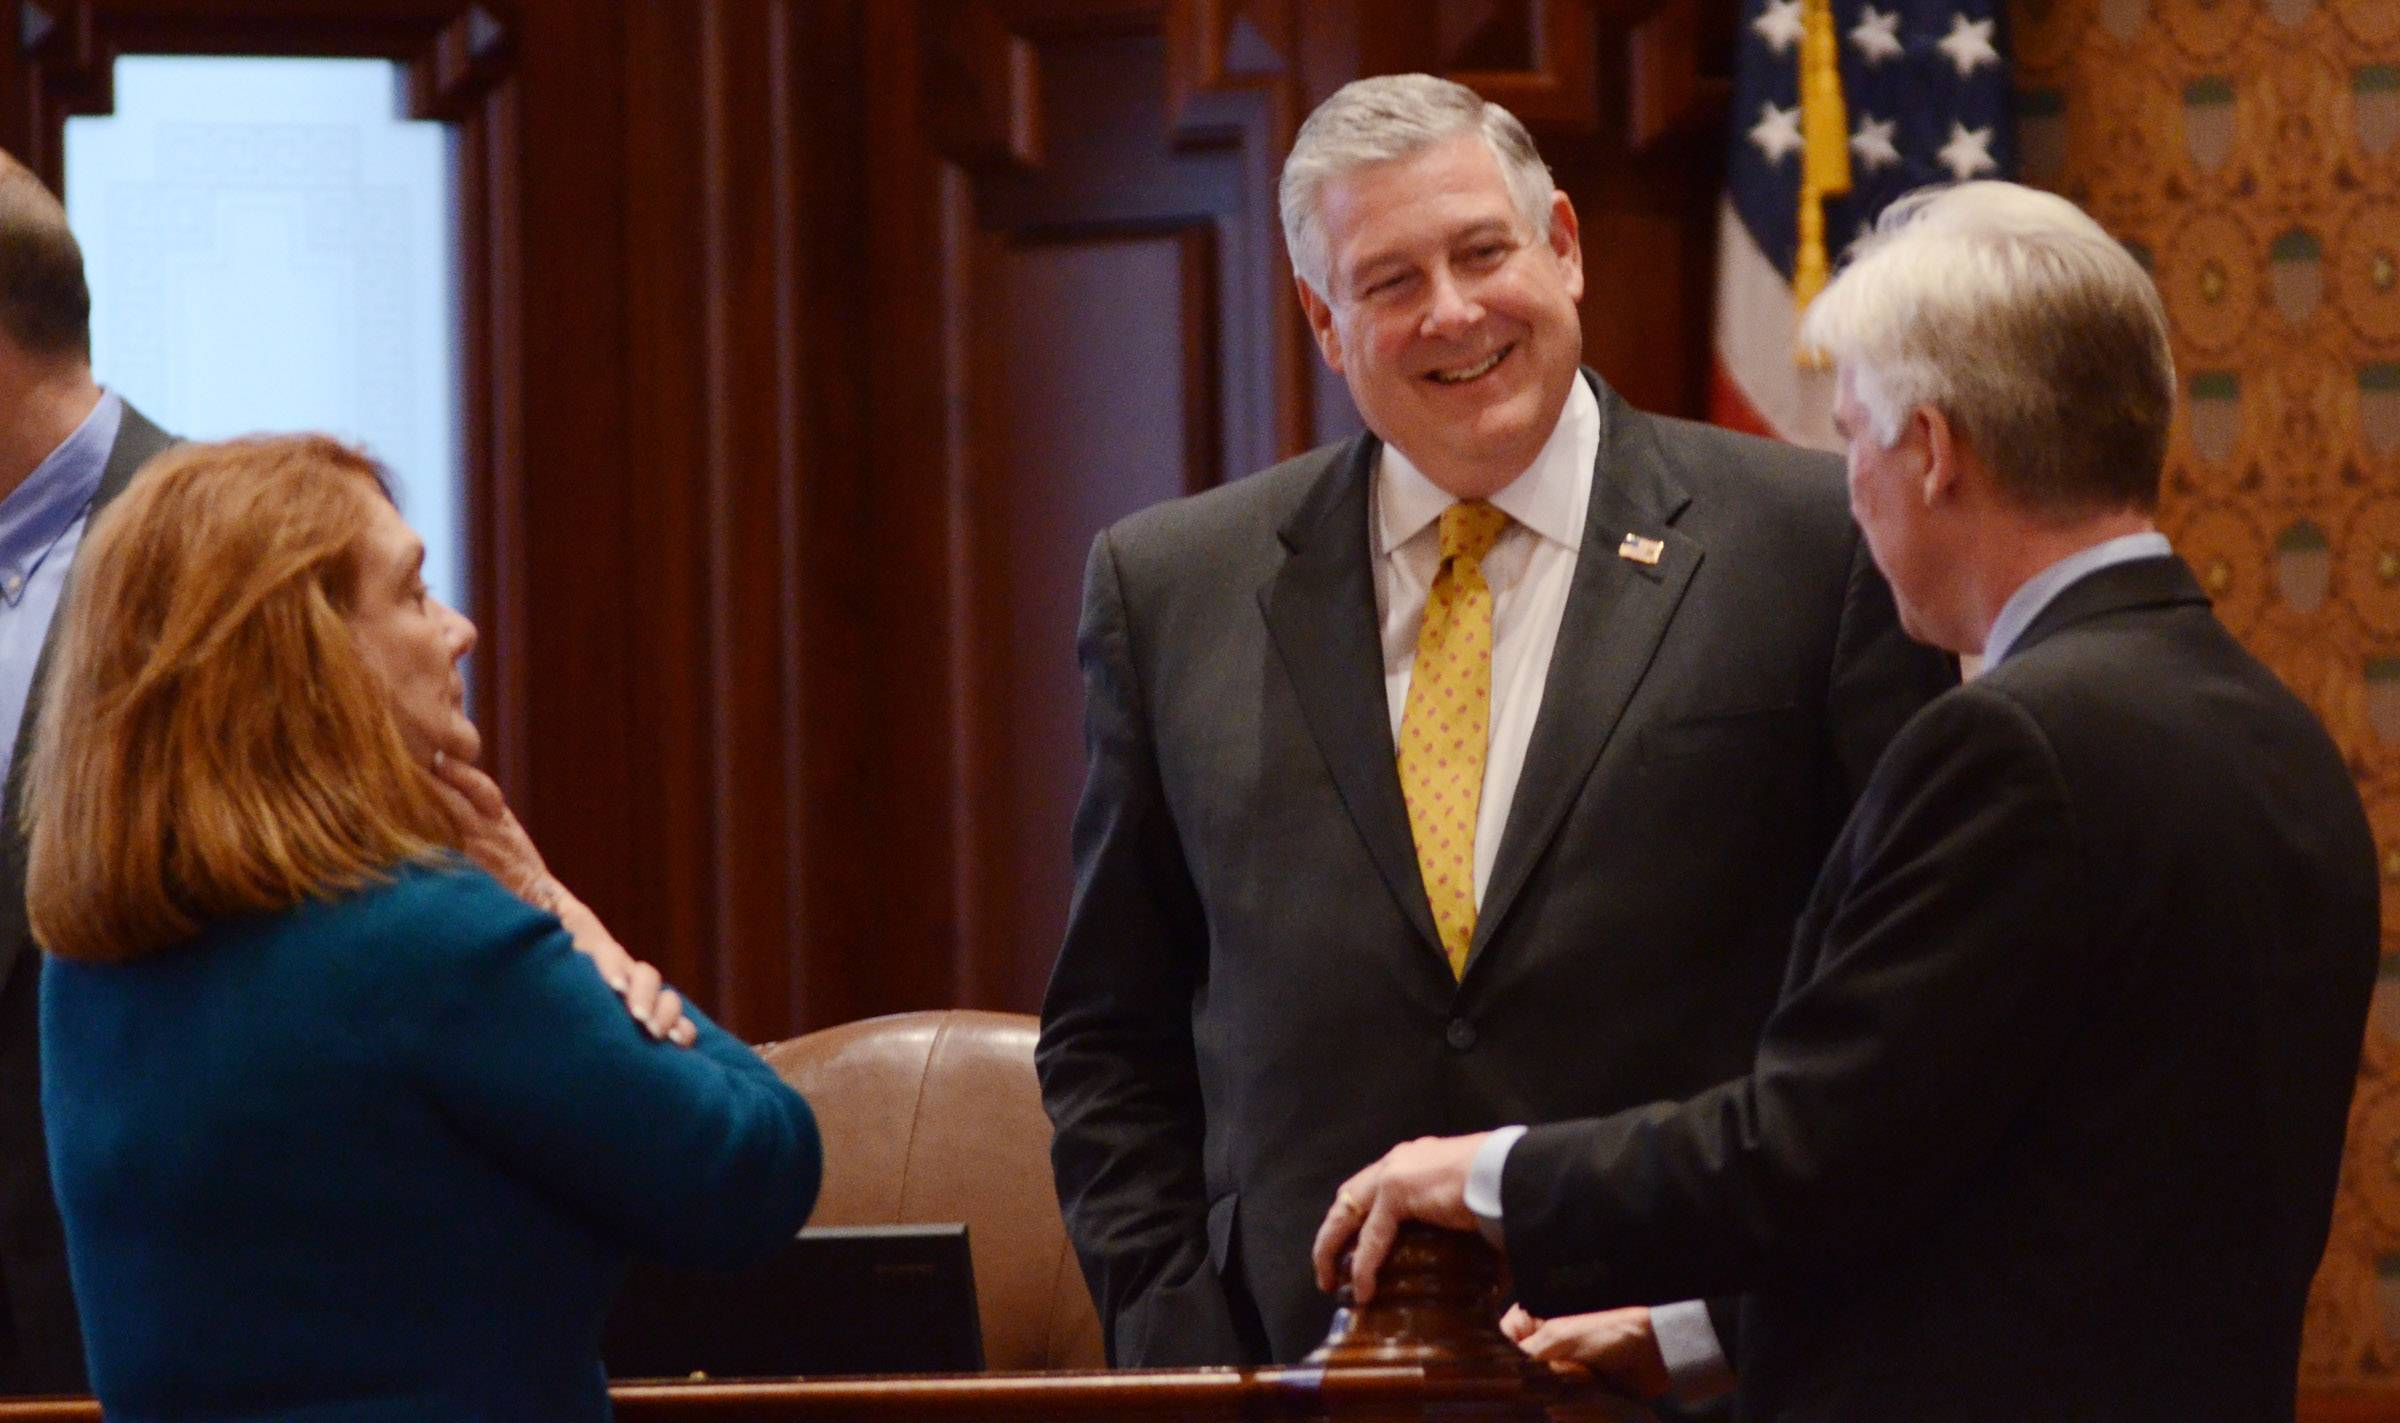 State Sen. Kirk Dillard, a Hinsdale Republican, will leave the Illinois Senate at the end of July. He talks with state Sens. Pam Althoff, a McHenry Republican, and Michael Connelly, a Lisle Republican, on the floor of the Senate Wednesday.